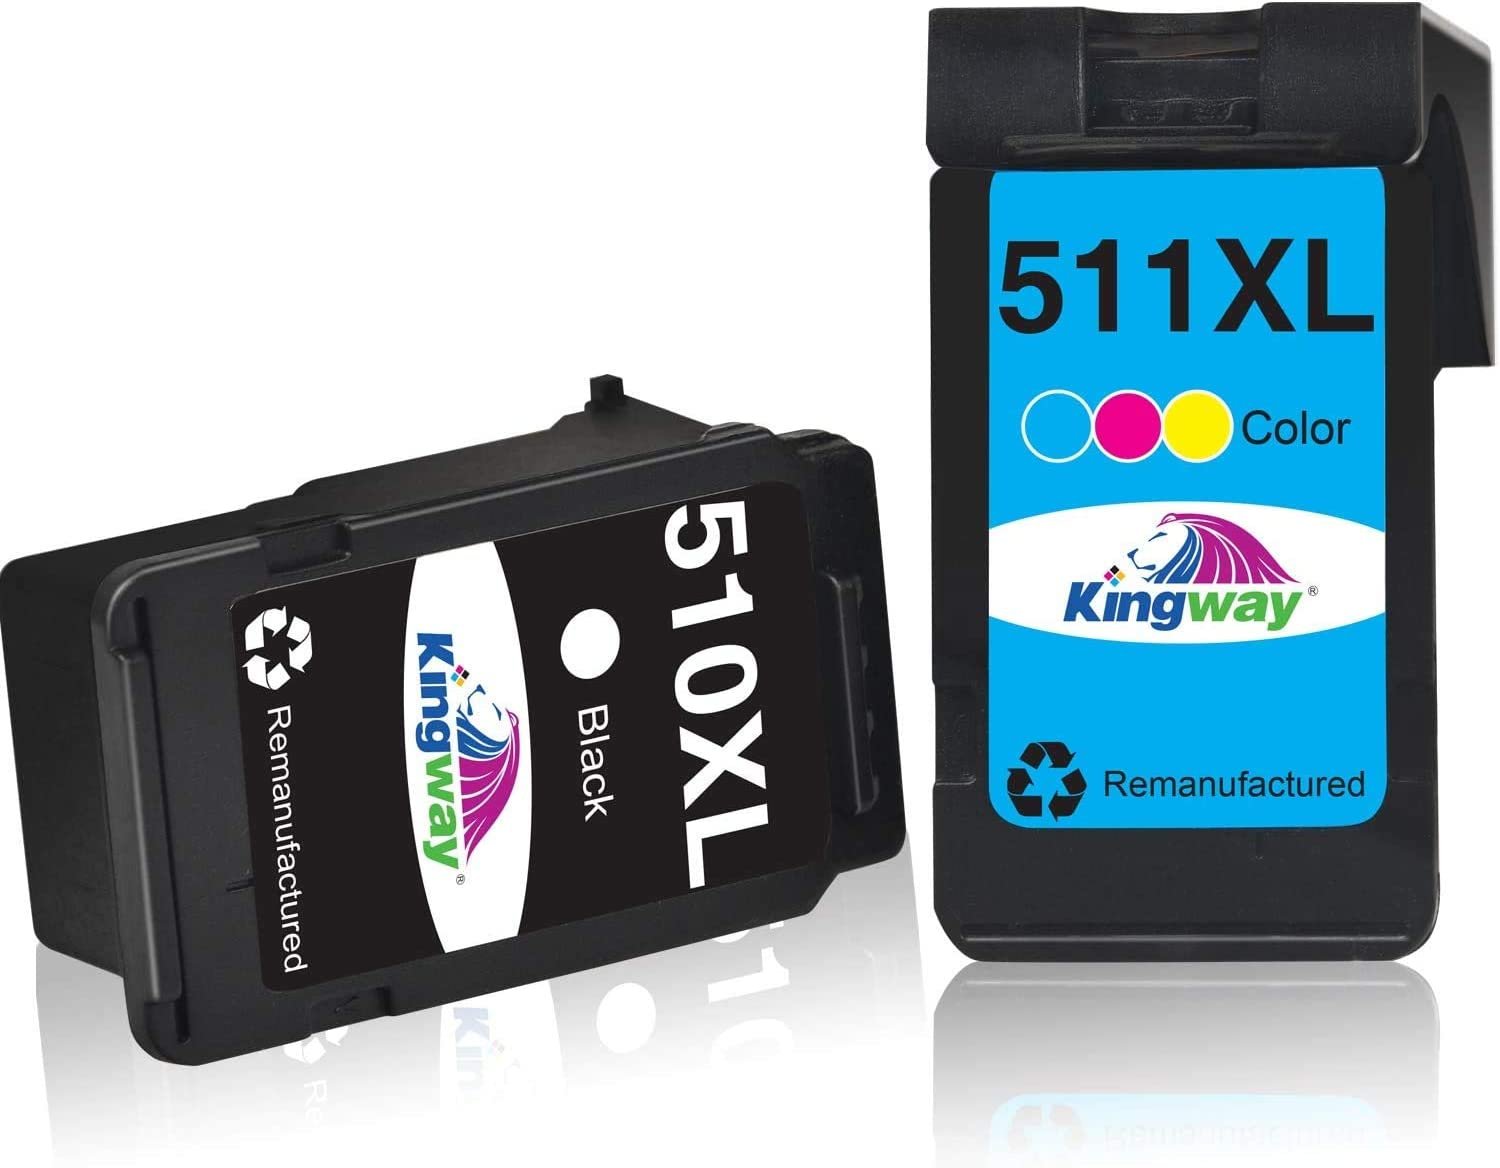 Kingway Remanufactured Pg 510 Cl 511 Replacement For Canon 510 And 511 Canon Pg 510 Cl 511 Printer Cartridges For Mp270 Mp230 Mp250 Ip2700 Mp280 Mp230 Mx320 Mx360 Mx410 Mx490 Mx495 1 Black 1